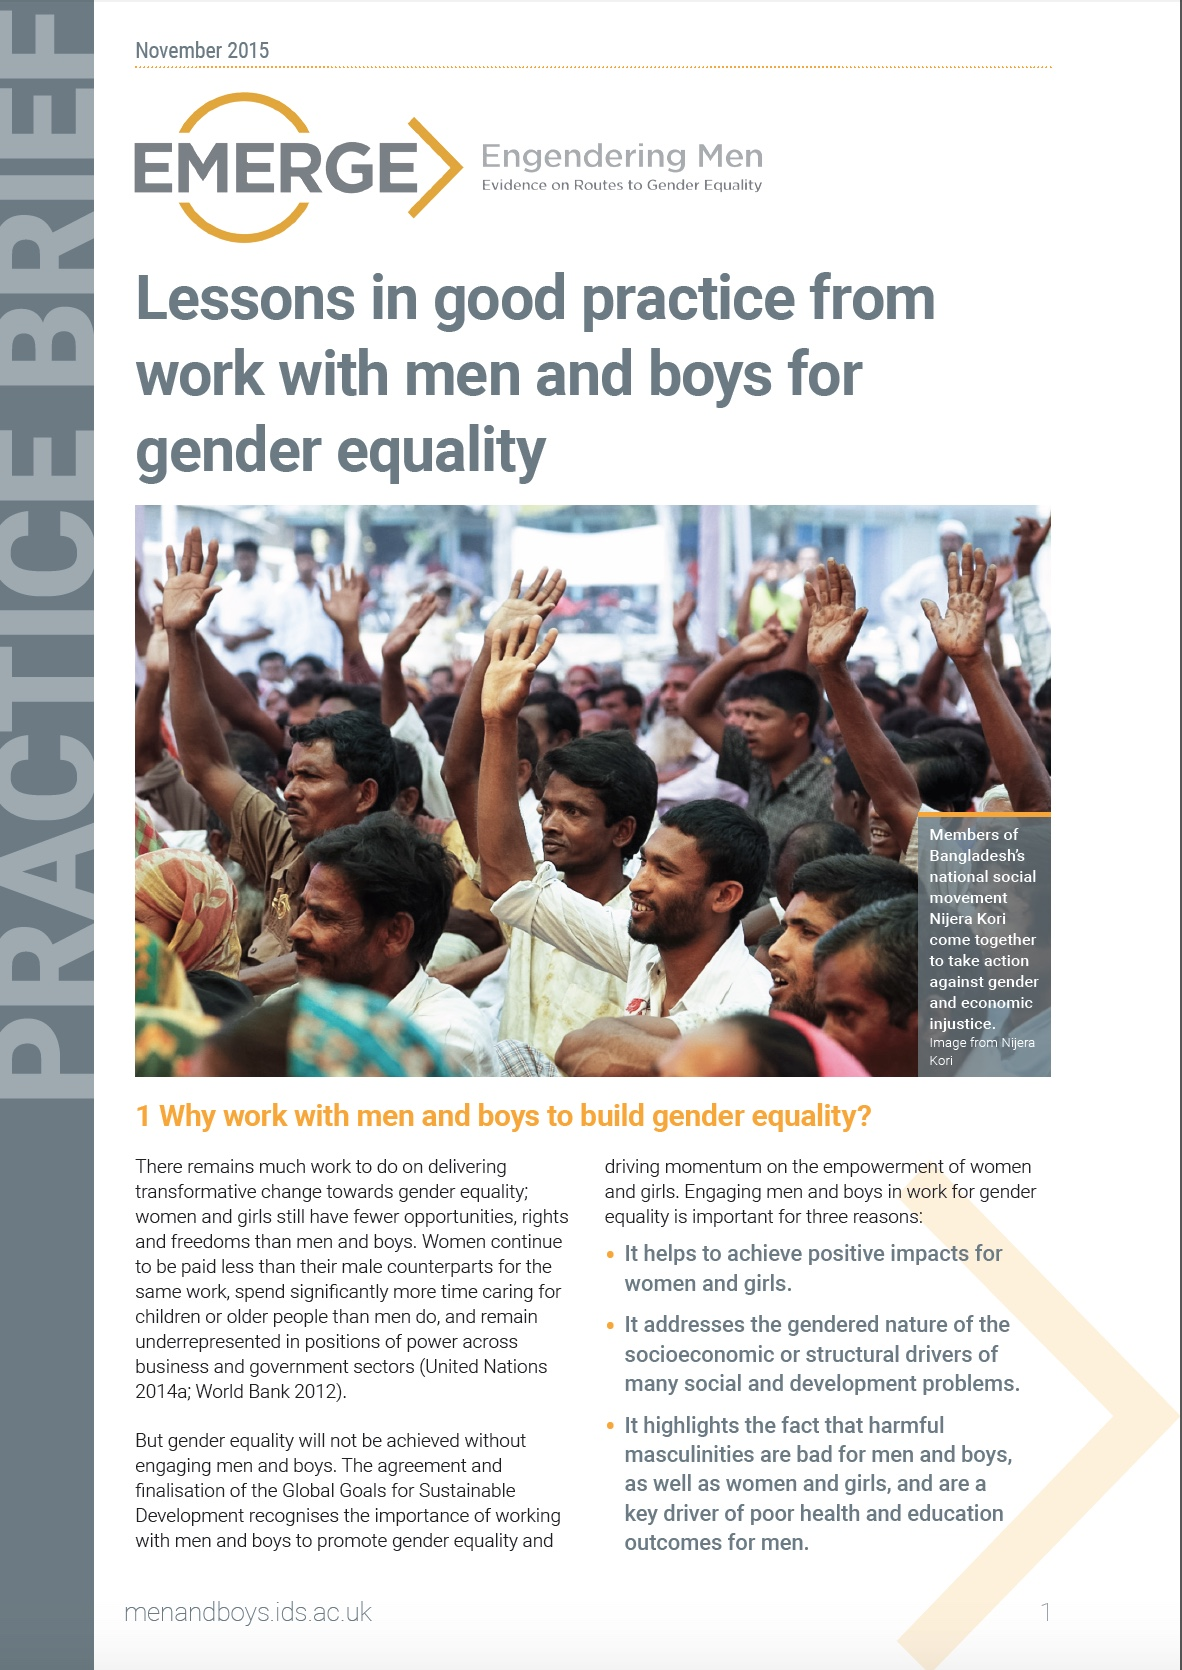 EMERGE, Practice brief - Lessons in good practice from work with men and boys 2015 - Cover